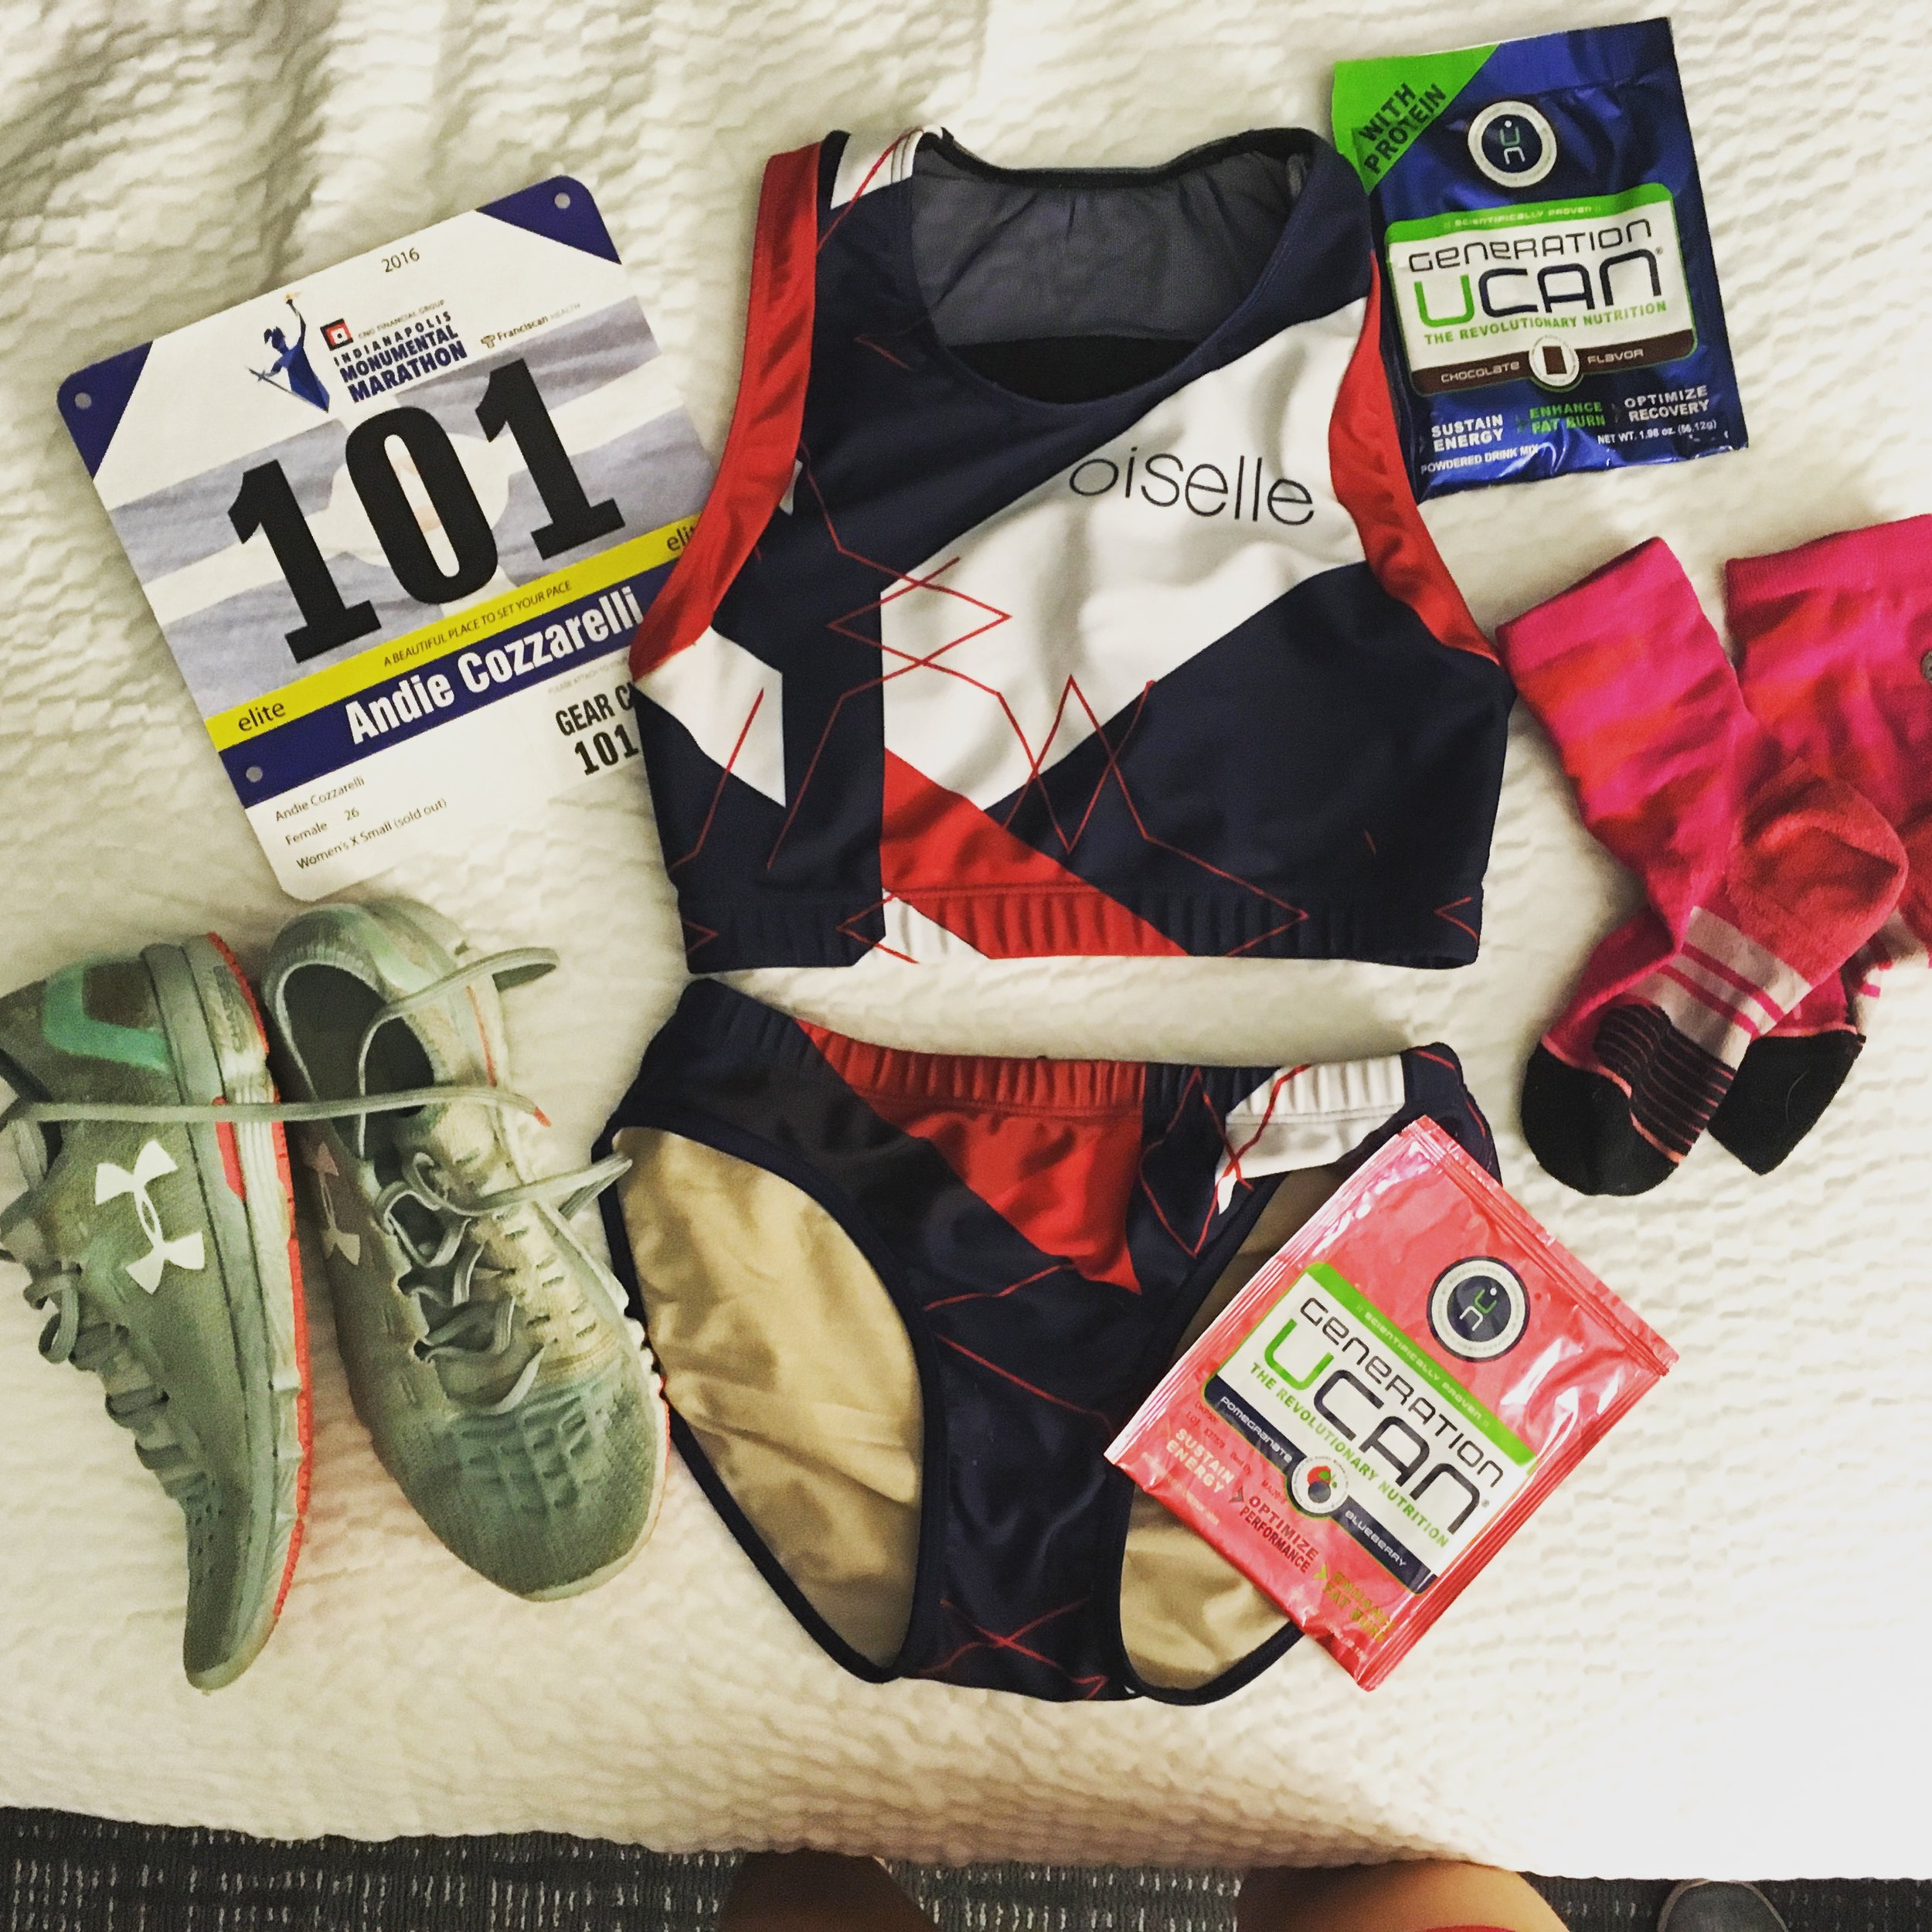 Oiselle Haute Volee Kit, Under Armour Slingshots, UCAN Superstarch & Protein, and Stance Socks.